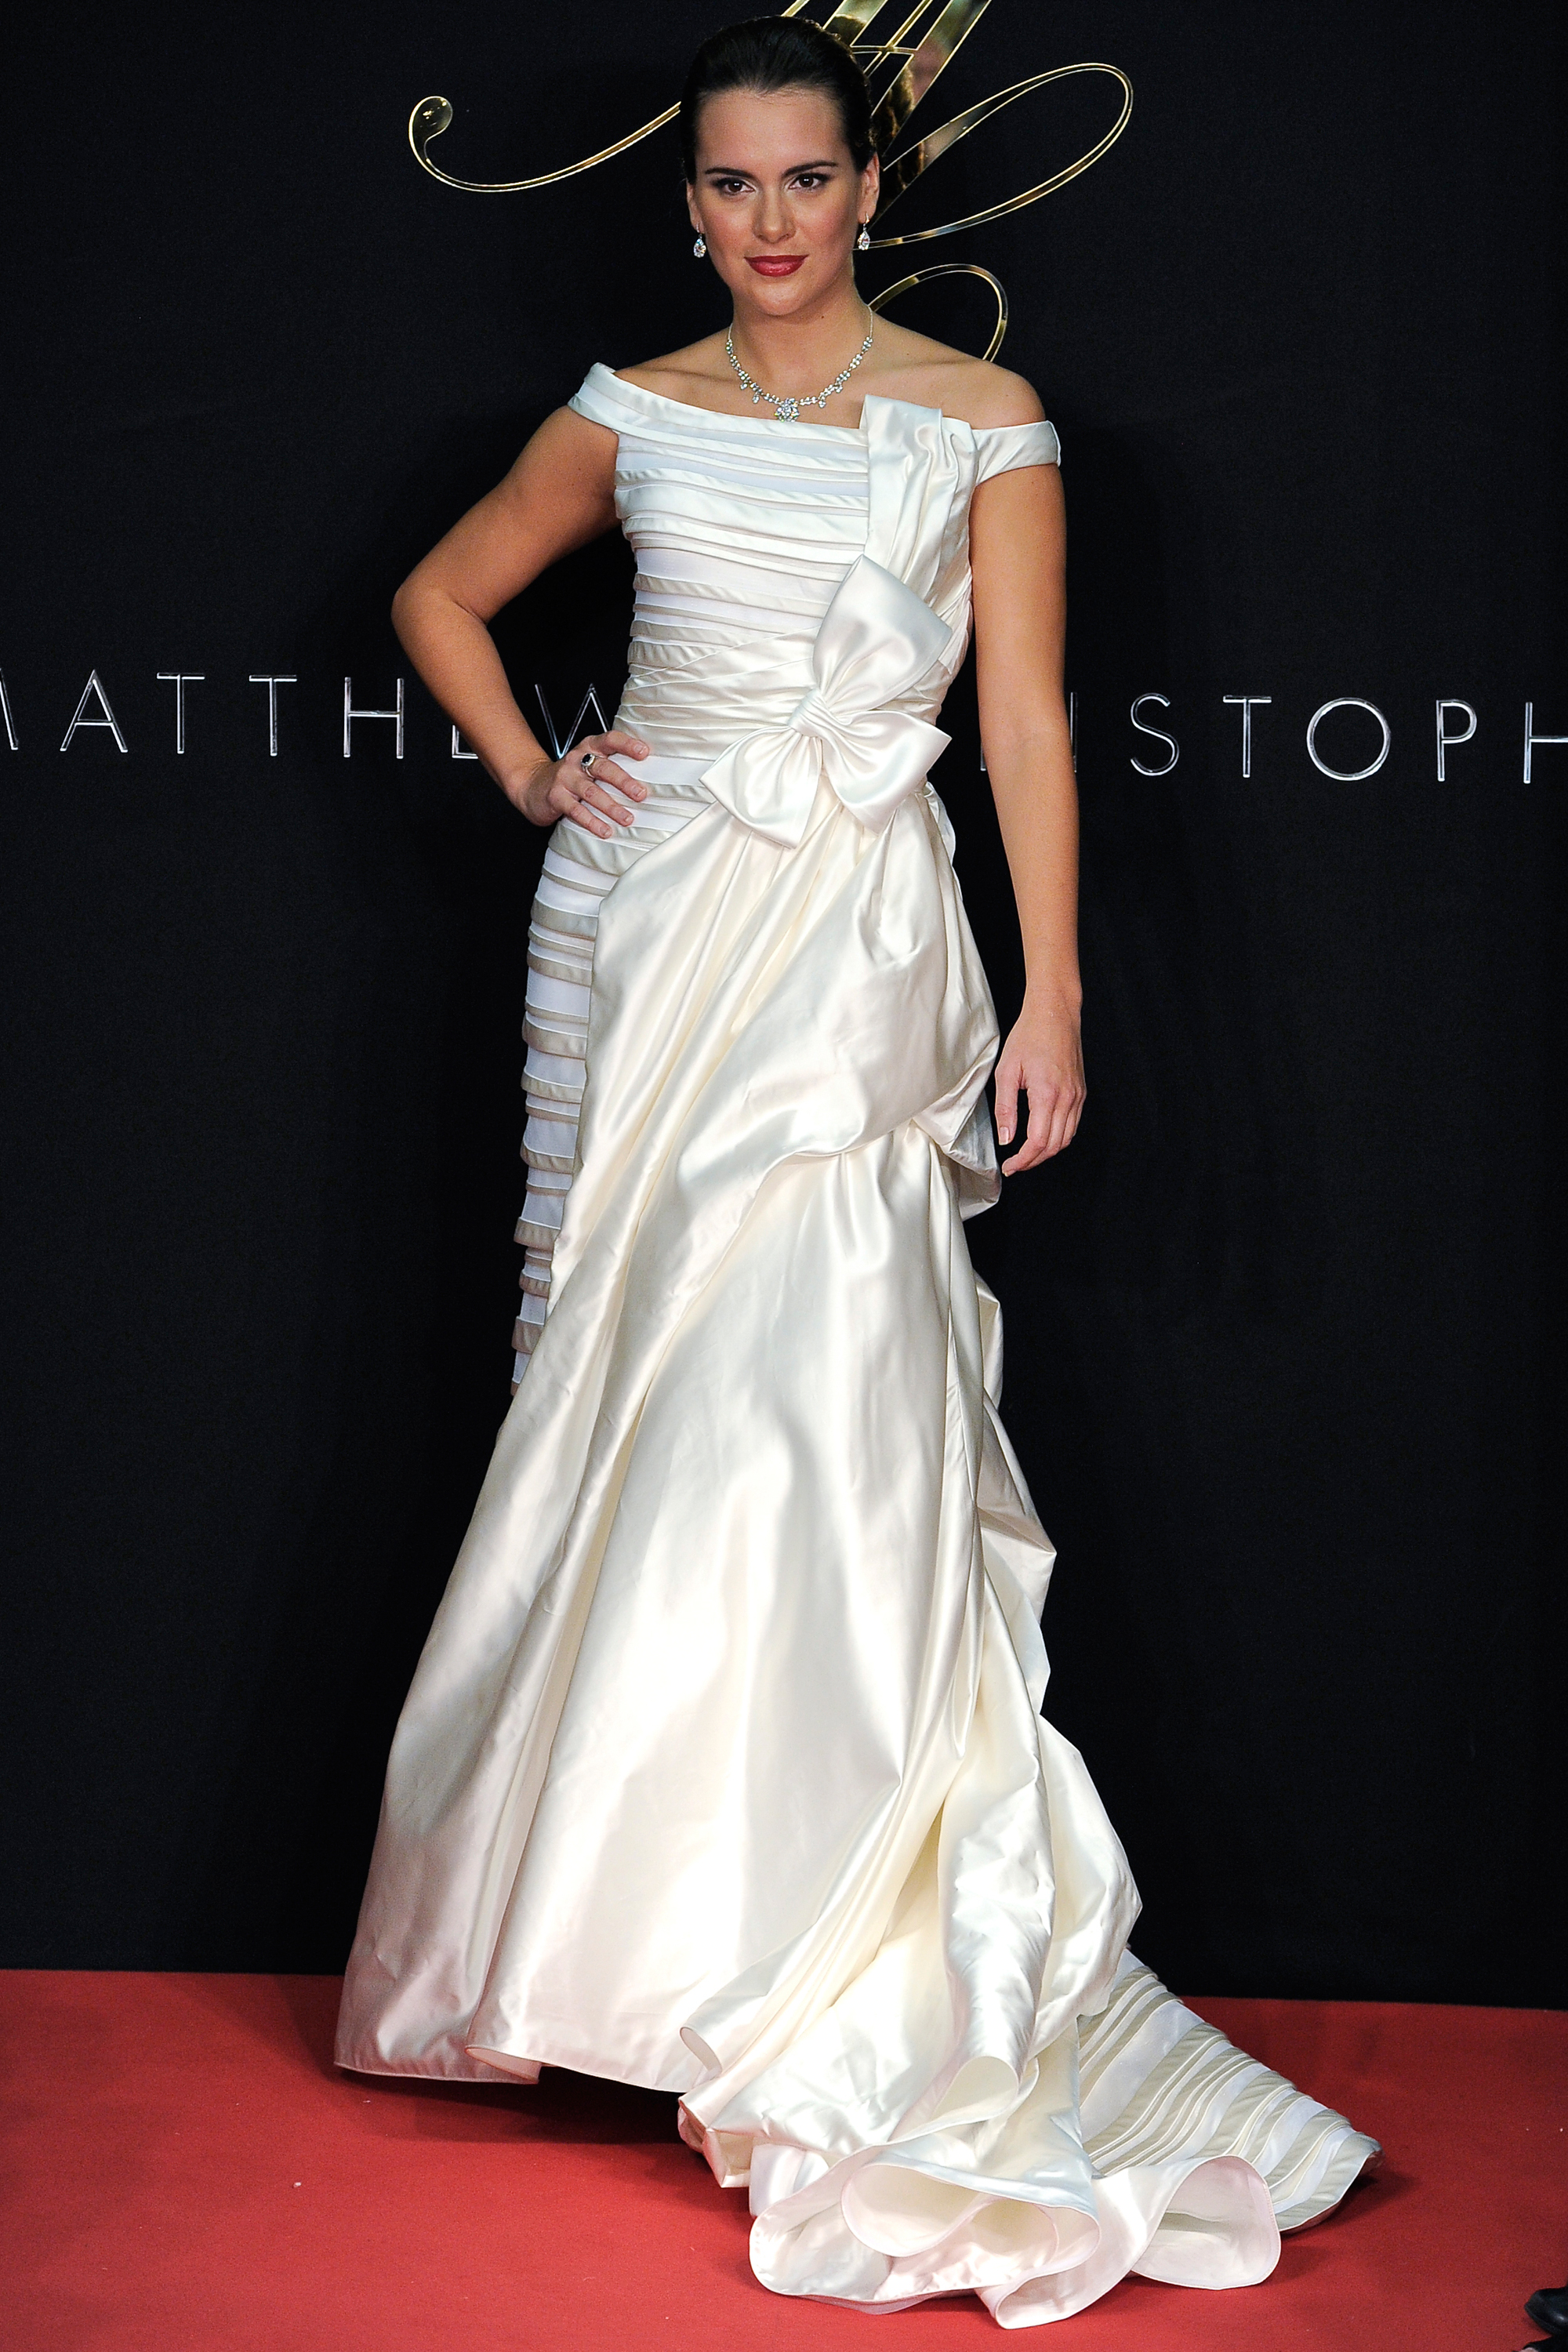 matthew-christo-fall2012-wd108109_009-df.jpg